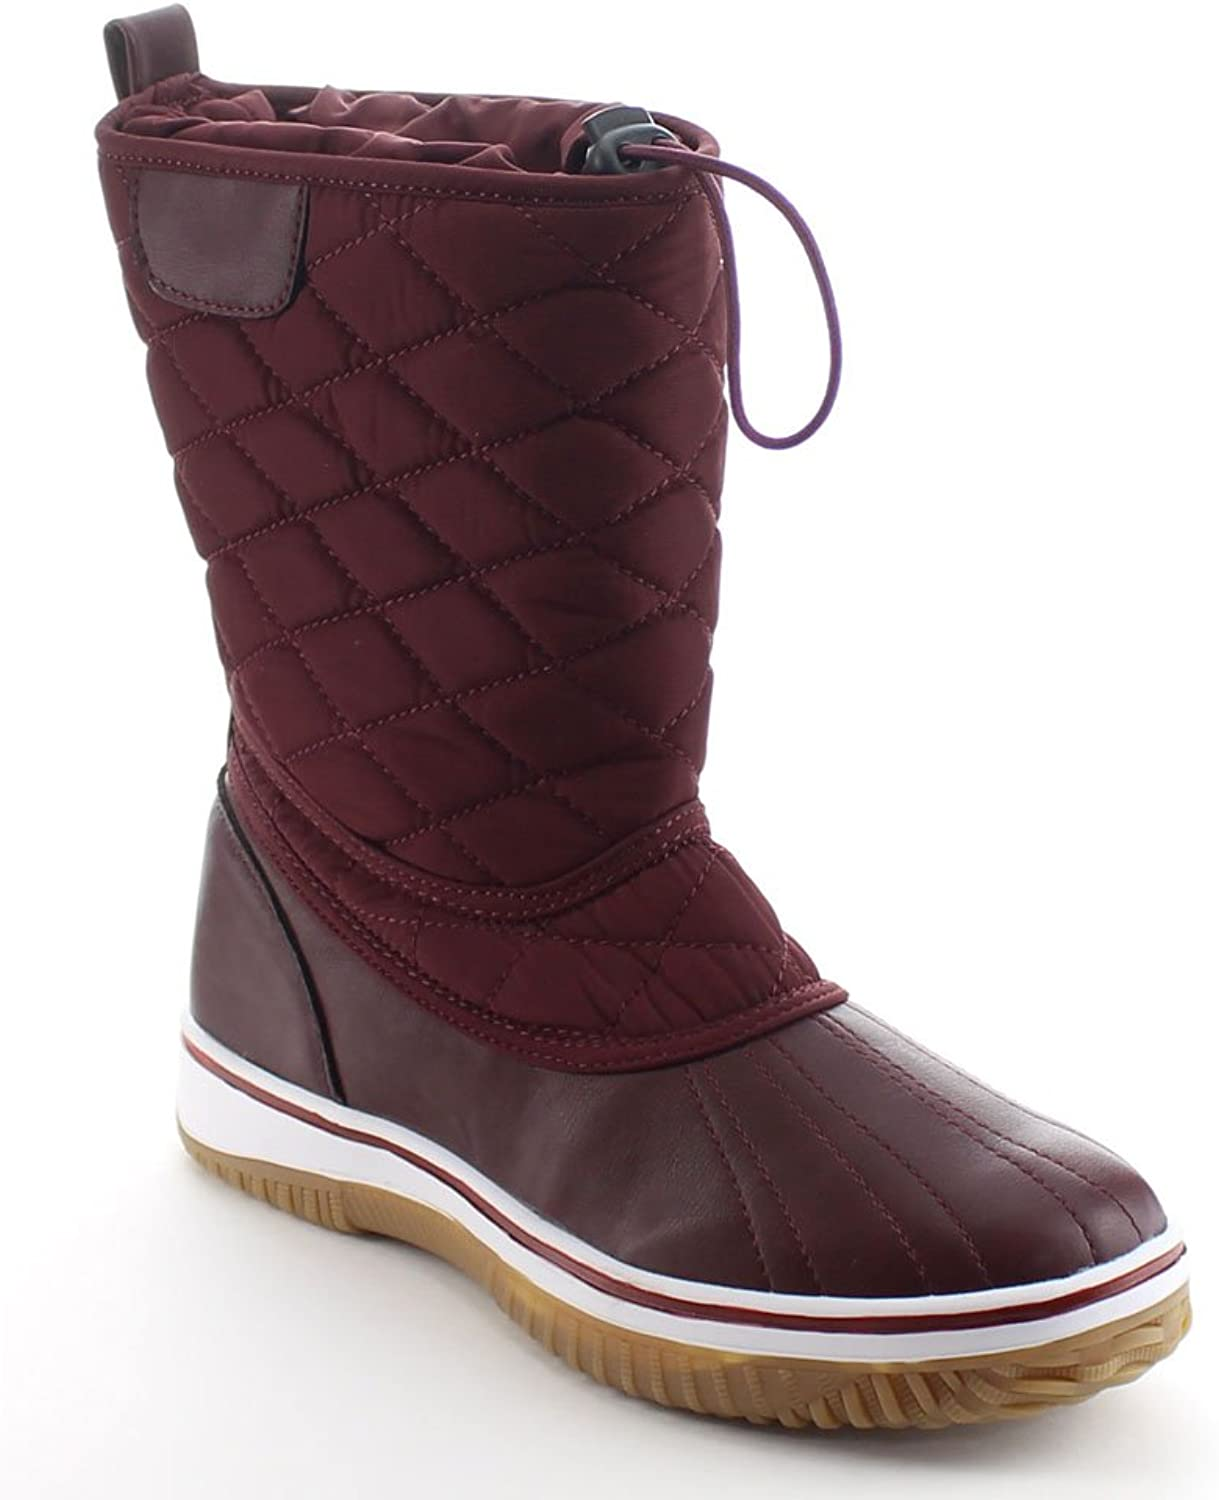 Da Viccino Refresh Snow-01 Women's Lace Up Waterproof Quilted Mid Calf Winter Snow Boots,Burgundy,6.5